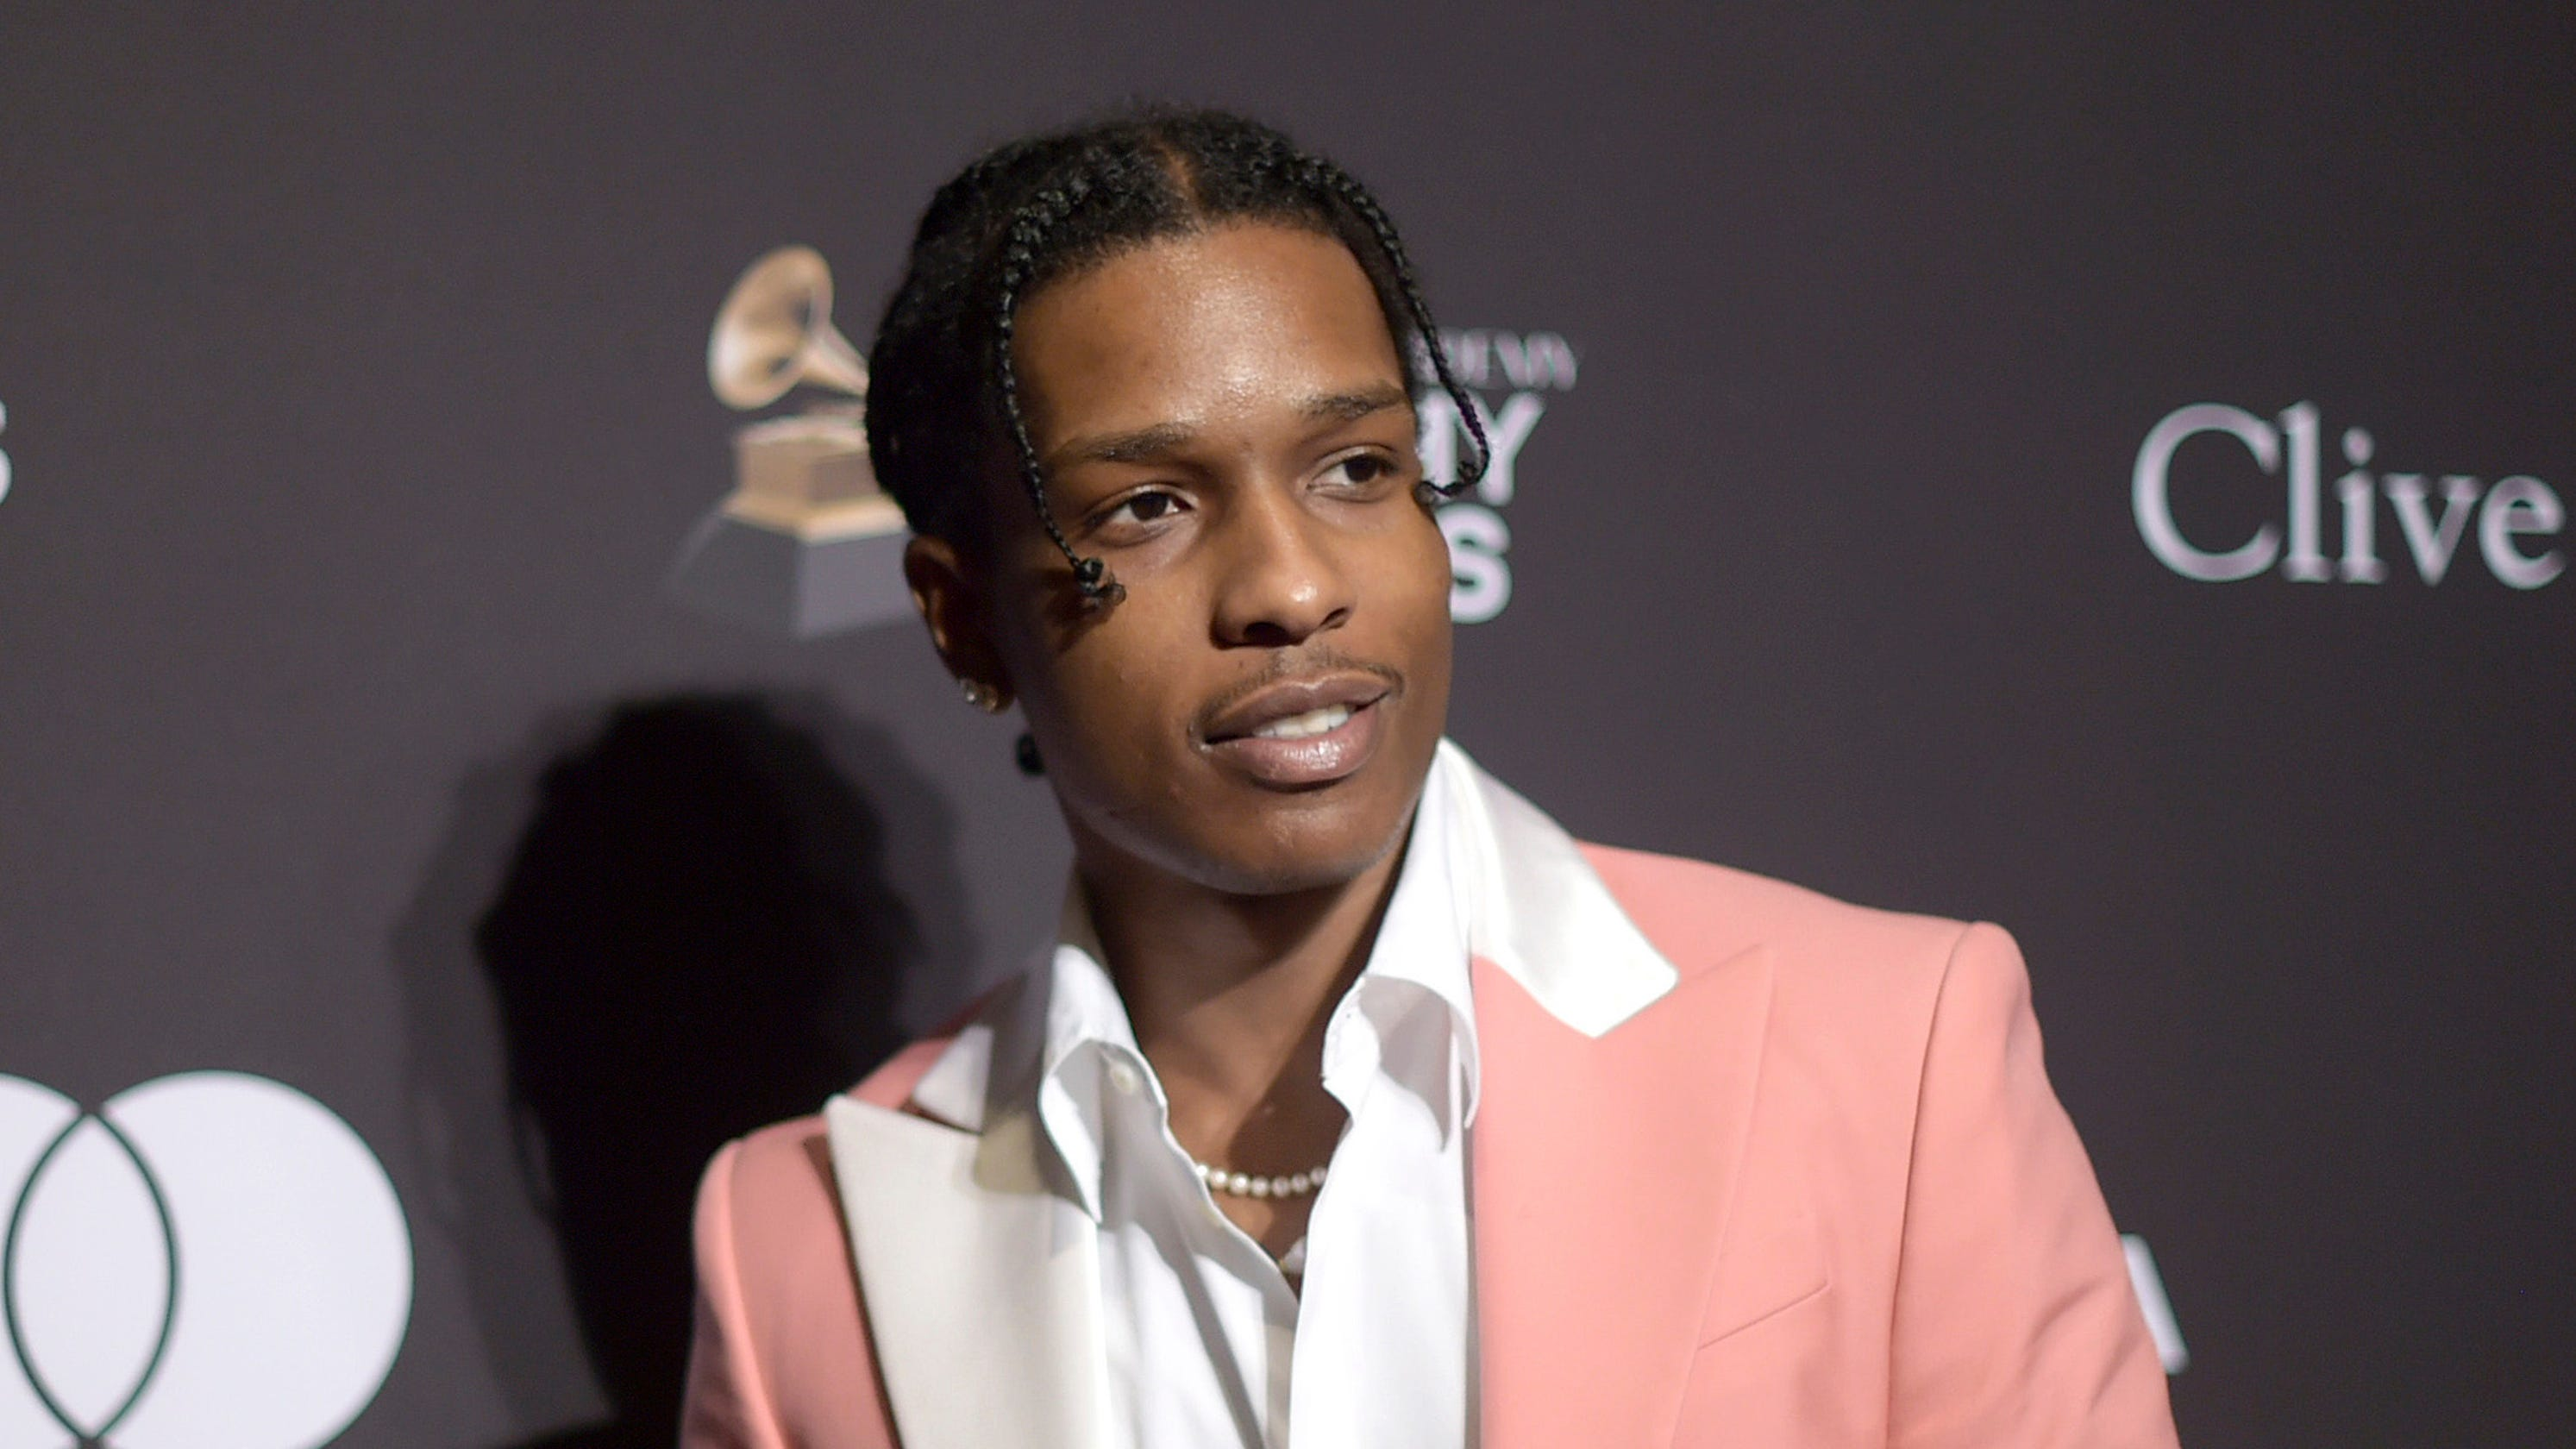 A$AP Rocky to be released from custody until Aug. 14 as judge delays verdict in assault case